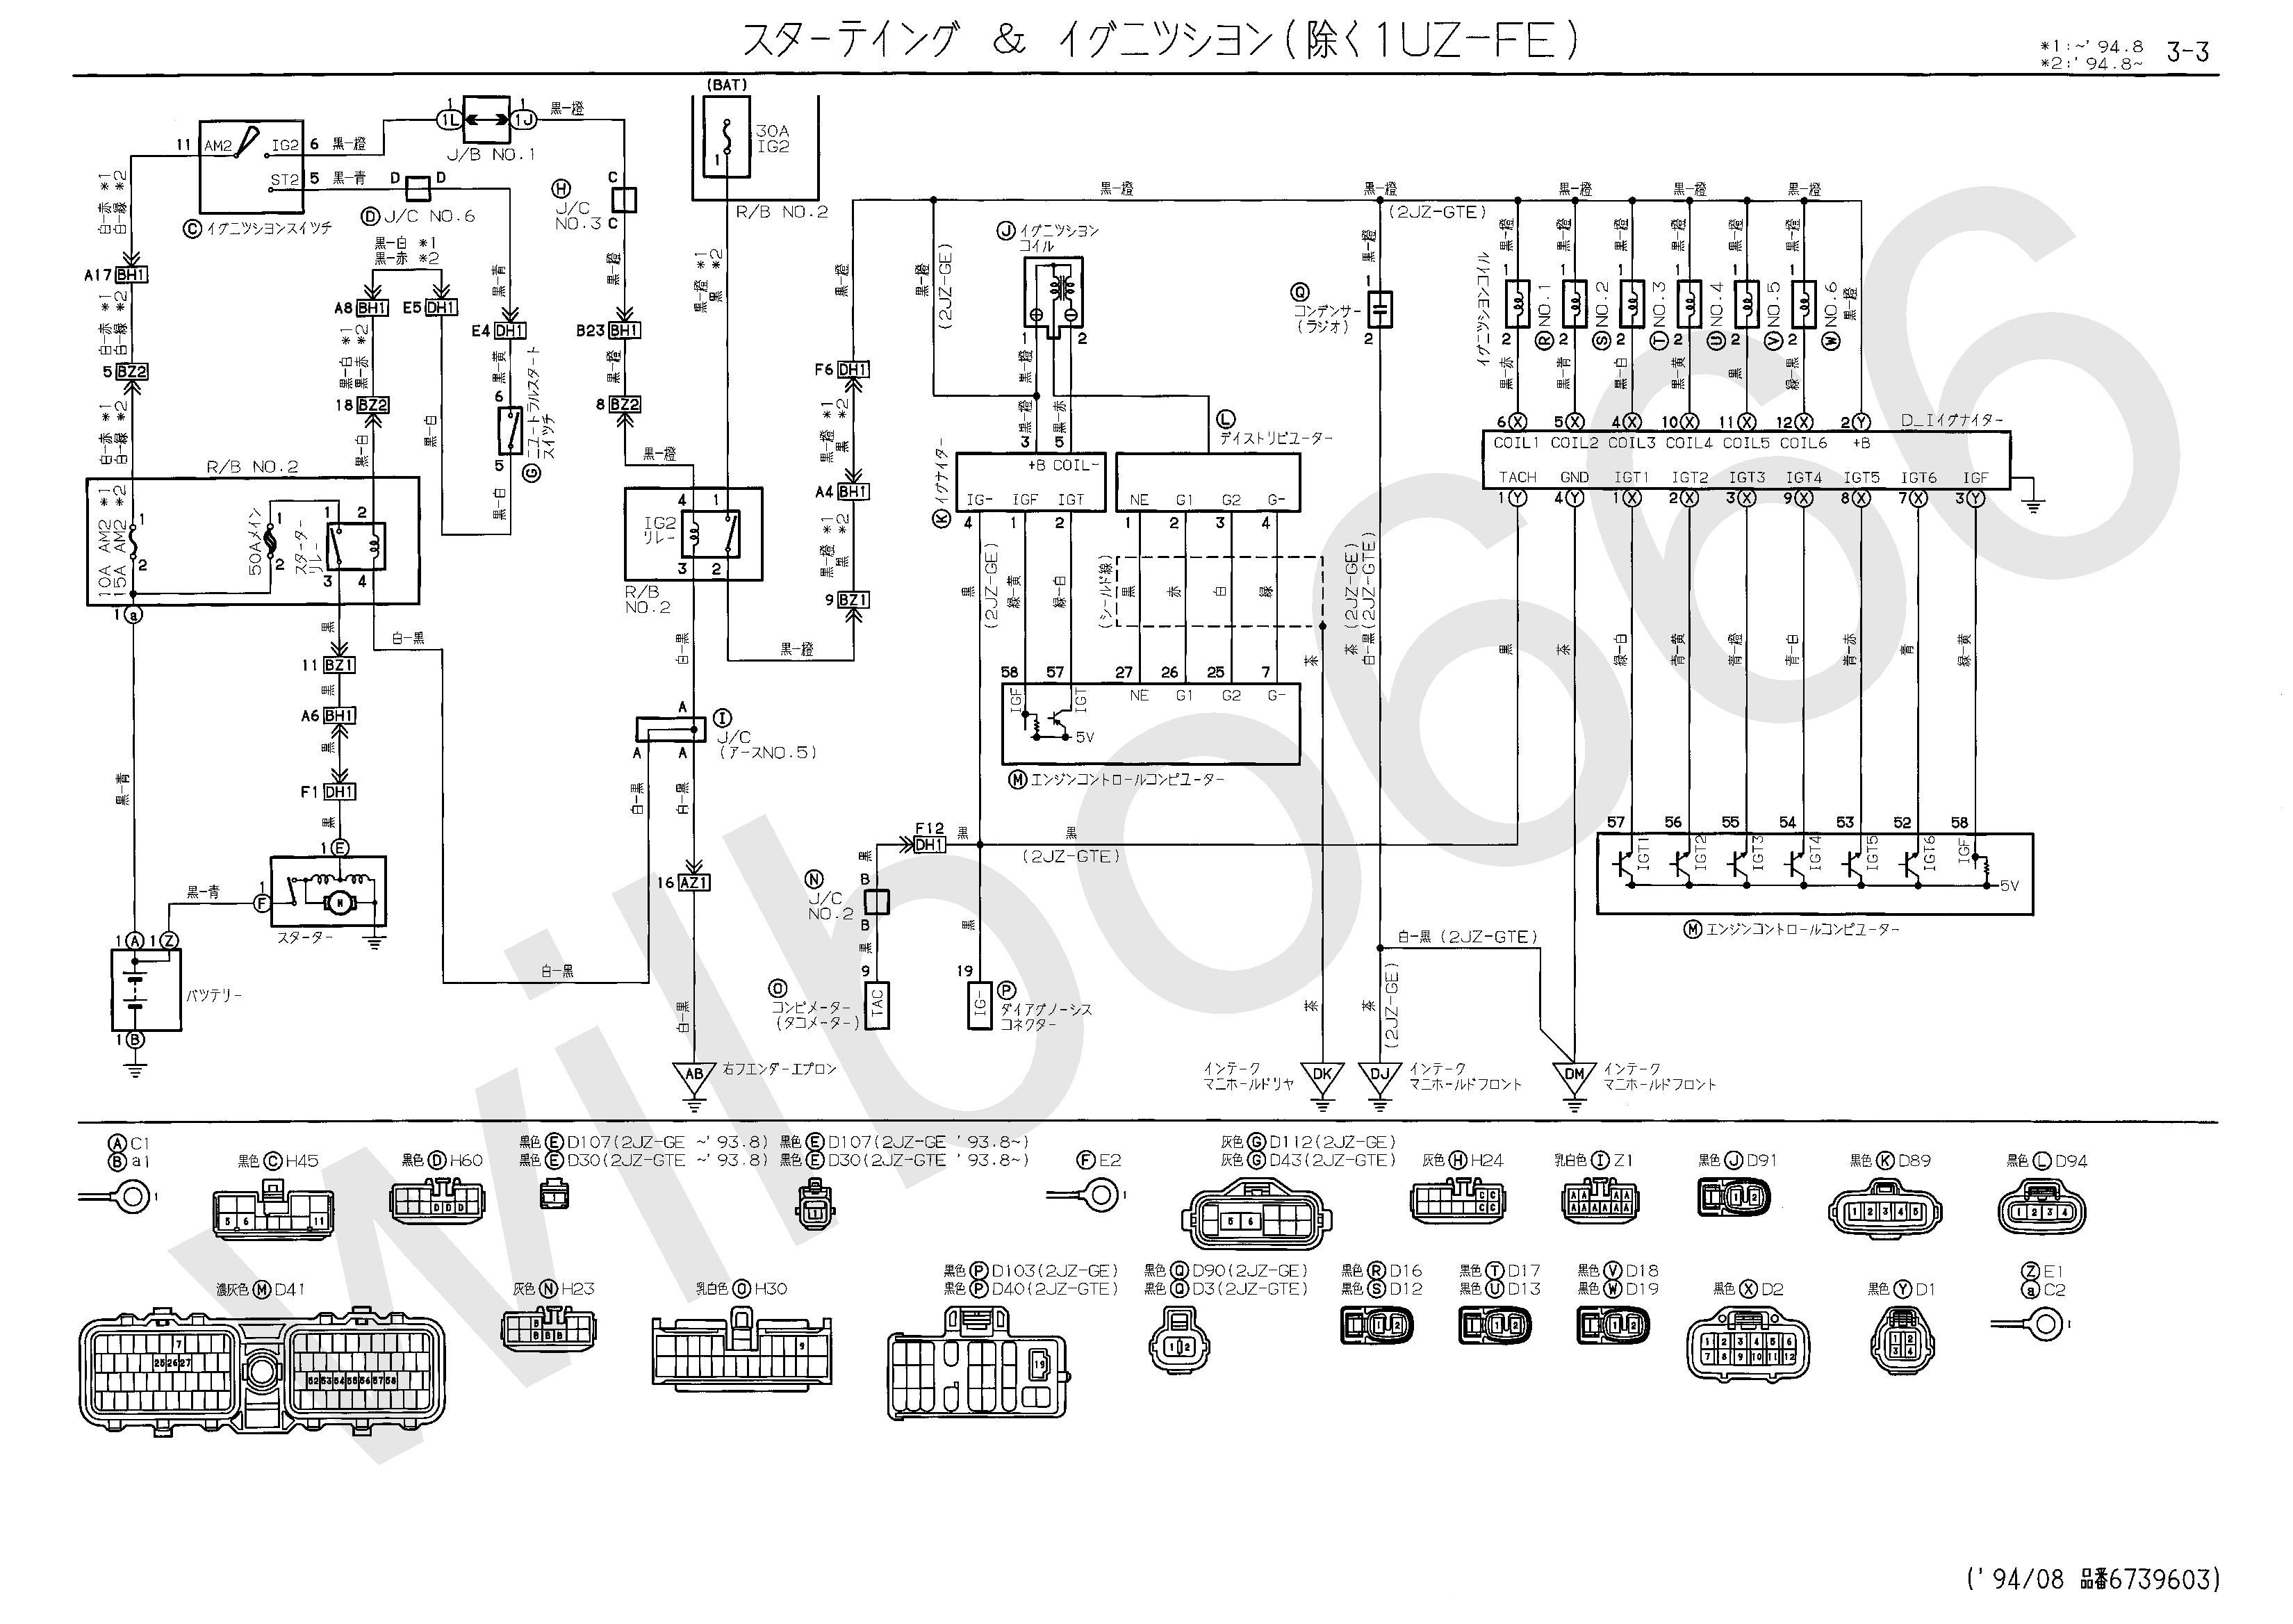 JZS14%23%2C UZS14%23 Electrical Wiring Diagram 6739604 3 3 wilbo666 2jz ge jzs147 engine wiring electrical wiring diagram books at virtualis.co